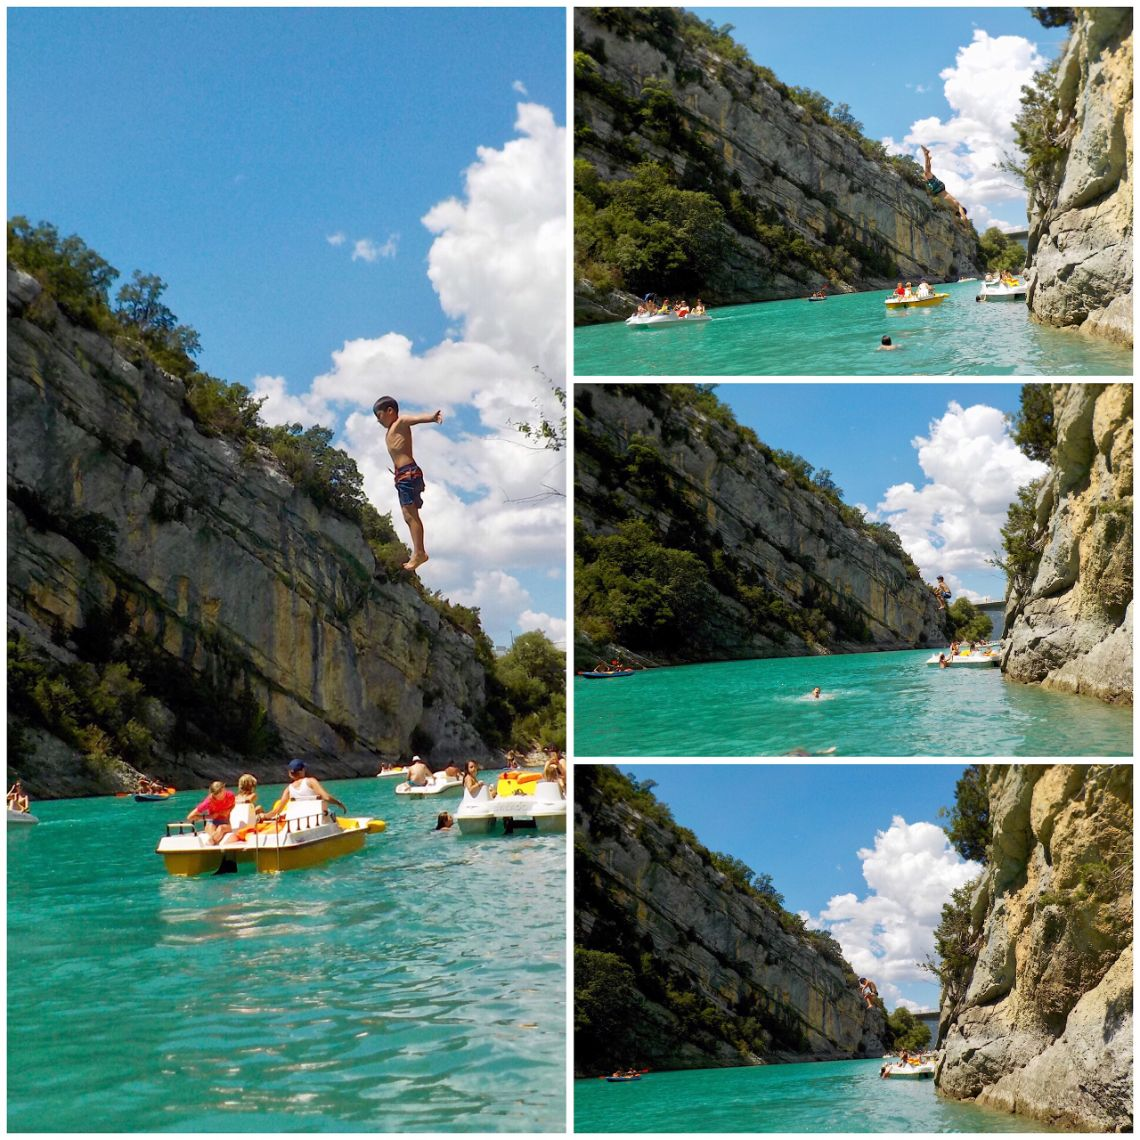 gorges du verdon cliff jumping